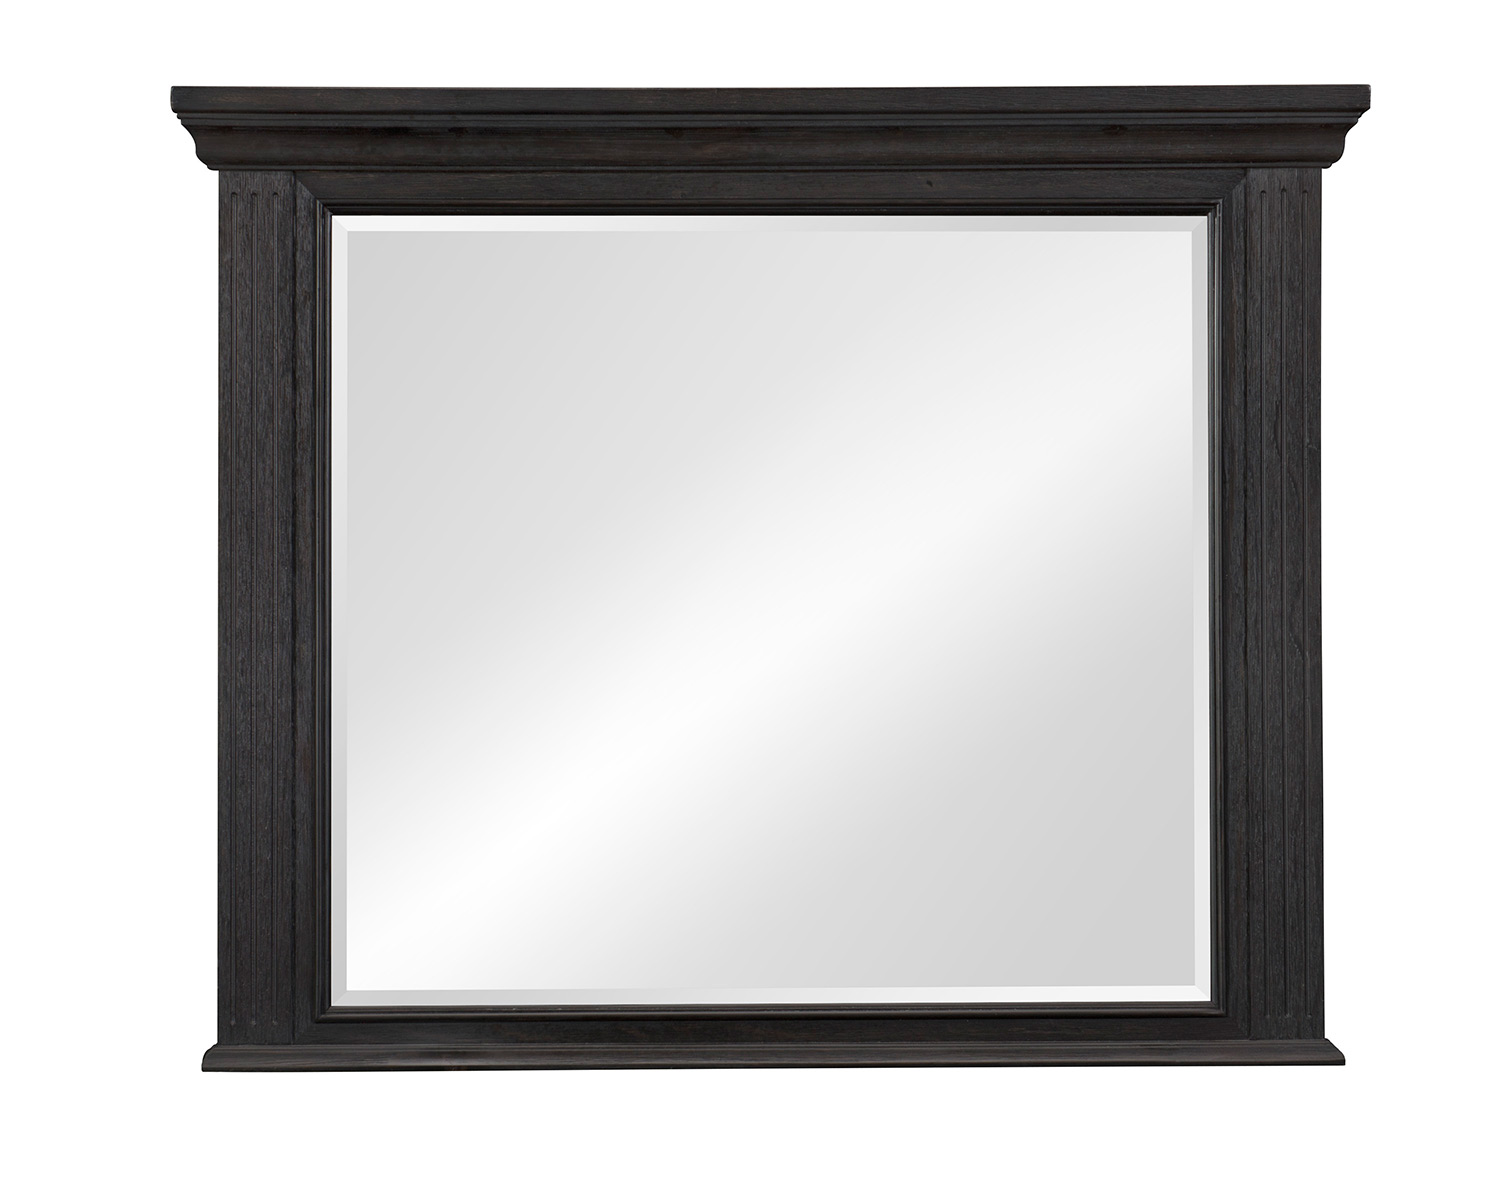 Homelegance Bolingbrook Mirror - Charcoal